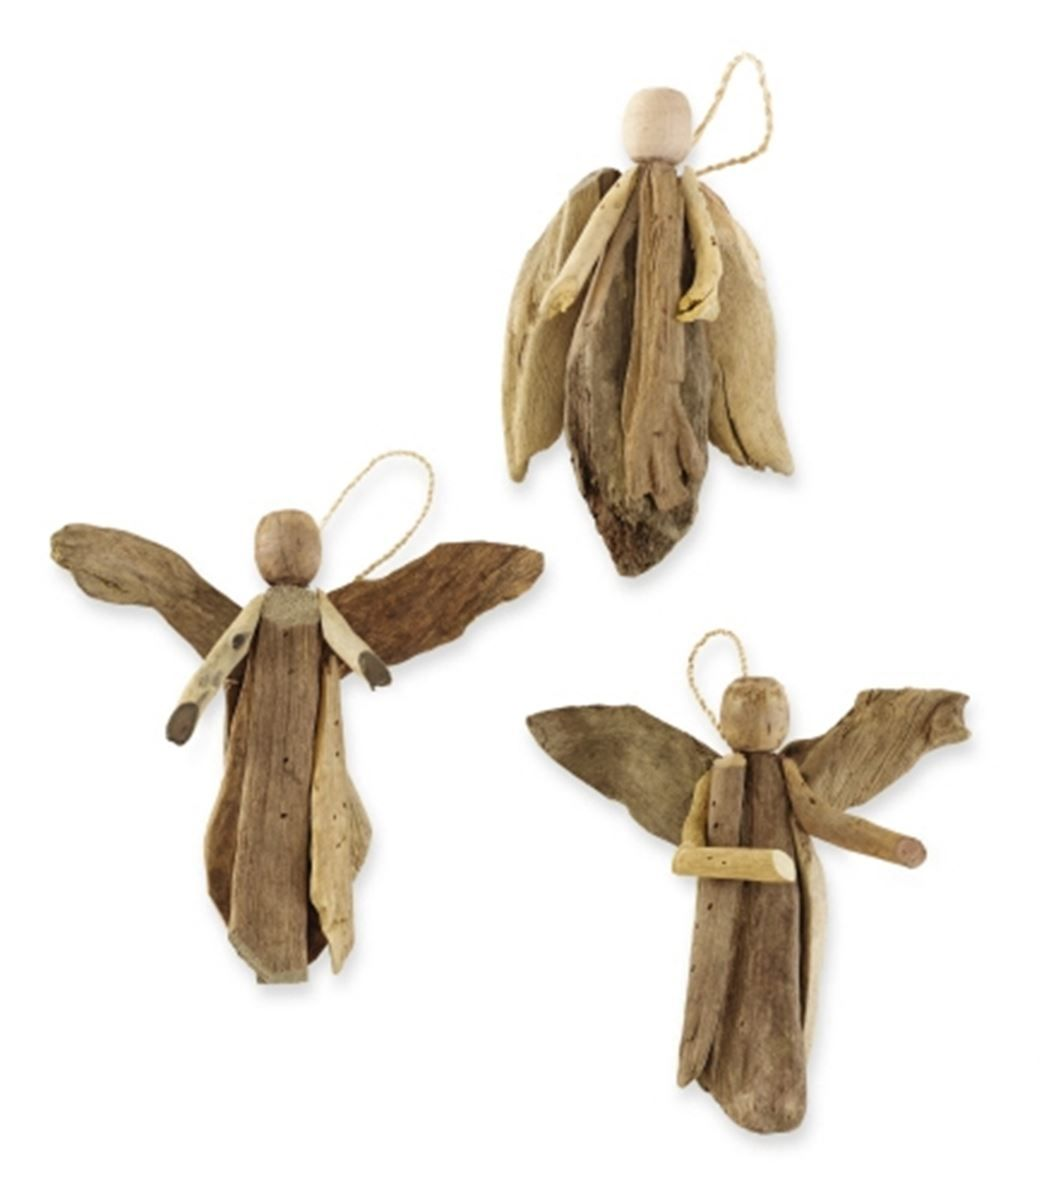 gifts and holidays driftwood set of 3 rustic driftwood angel decorations - Angel Decorations